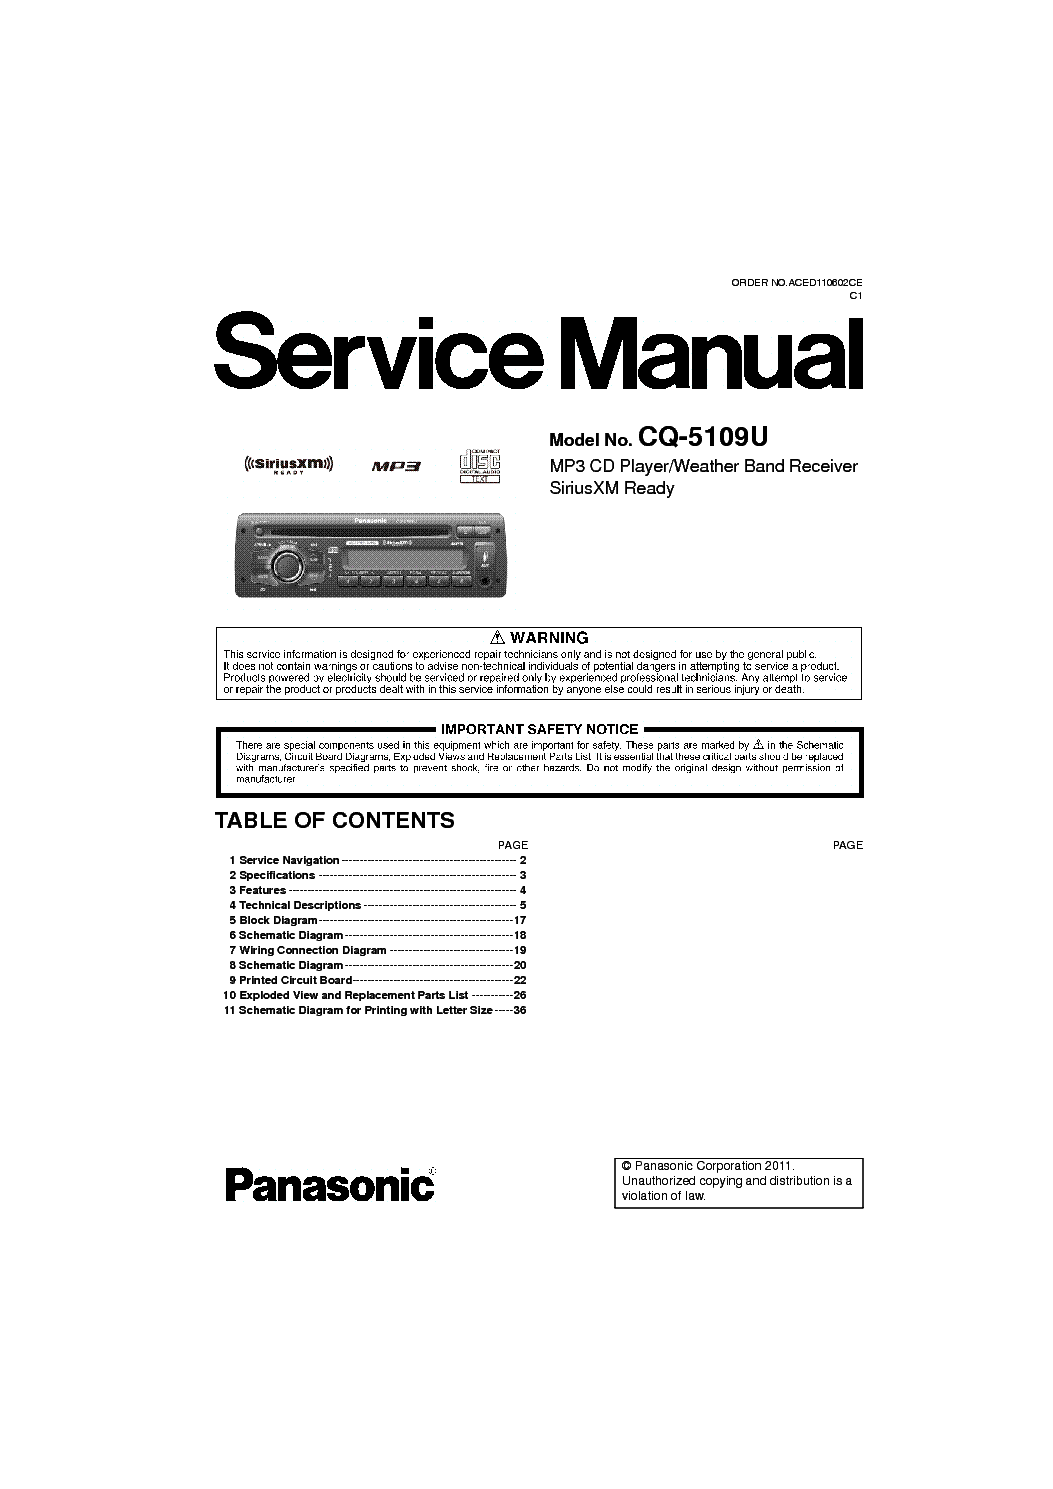 PANASONIC CQ-5109U service manual